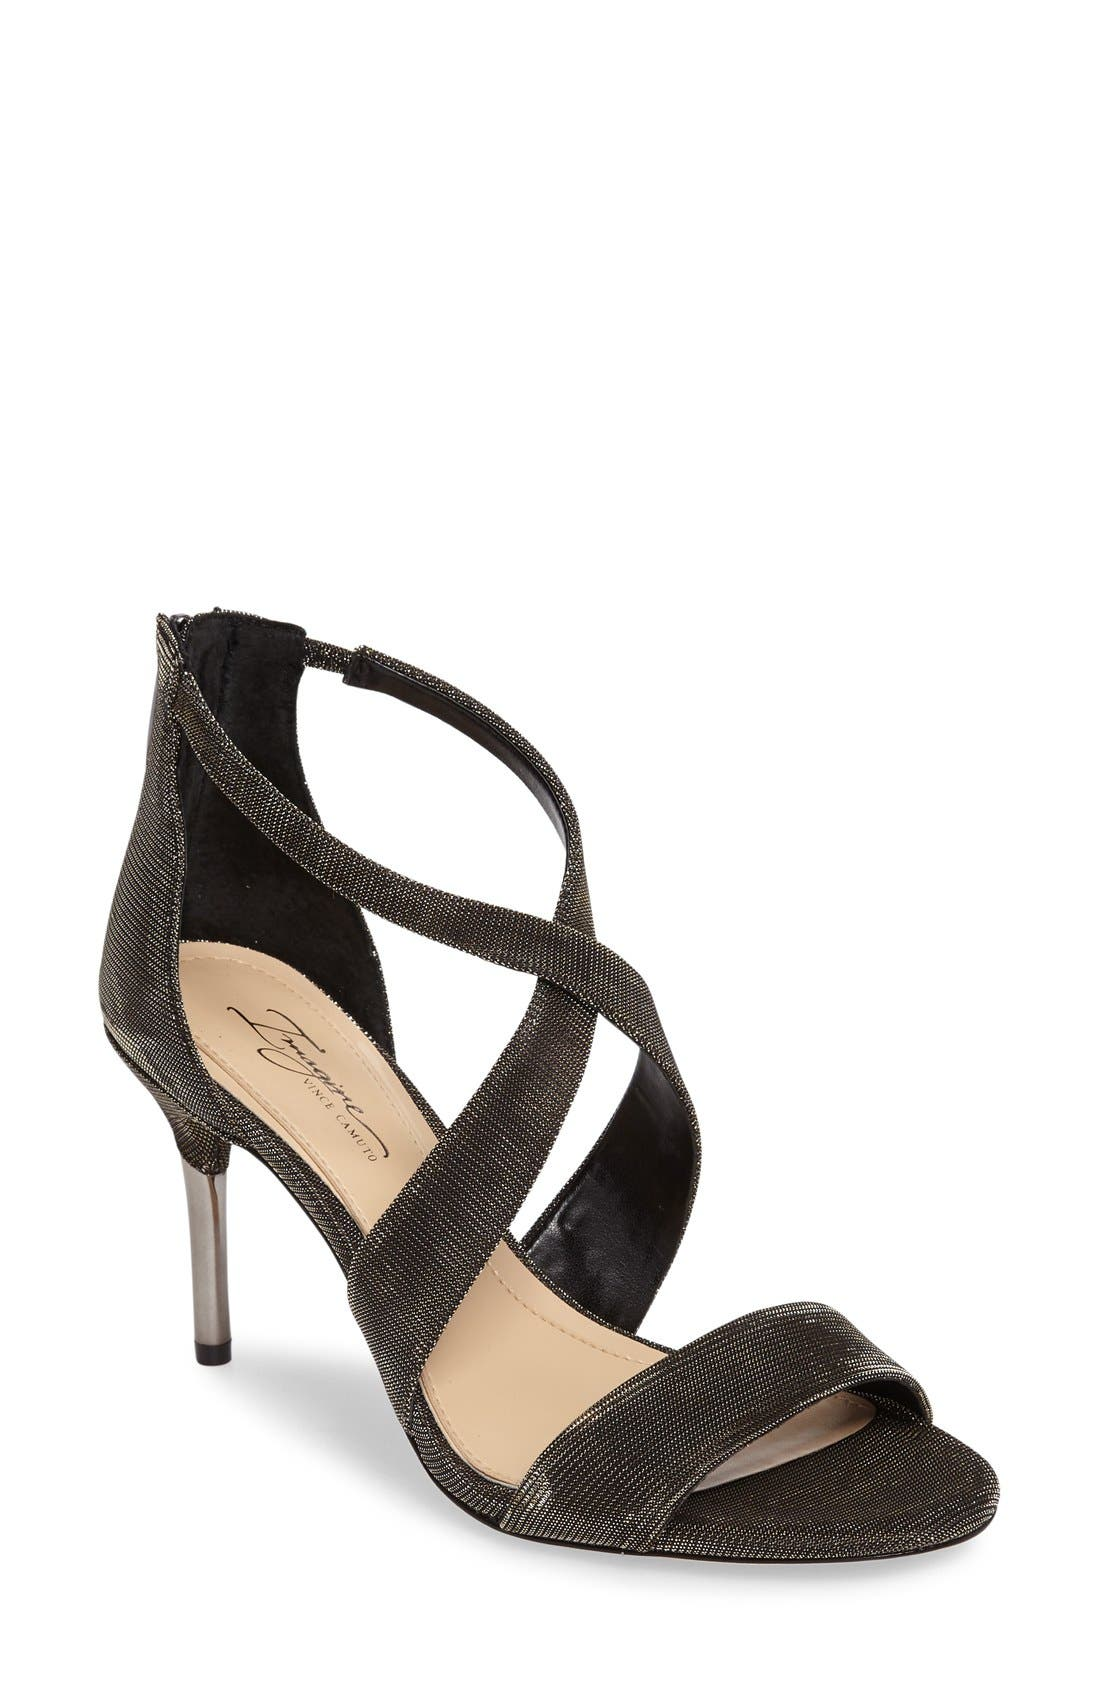 Alternate Image 1 Selected - Imagine by Vince Camuto 'Pascal' Sandal (Women)